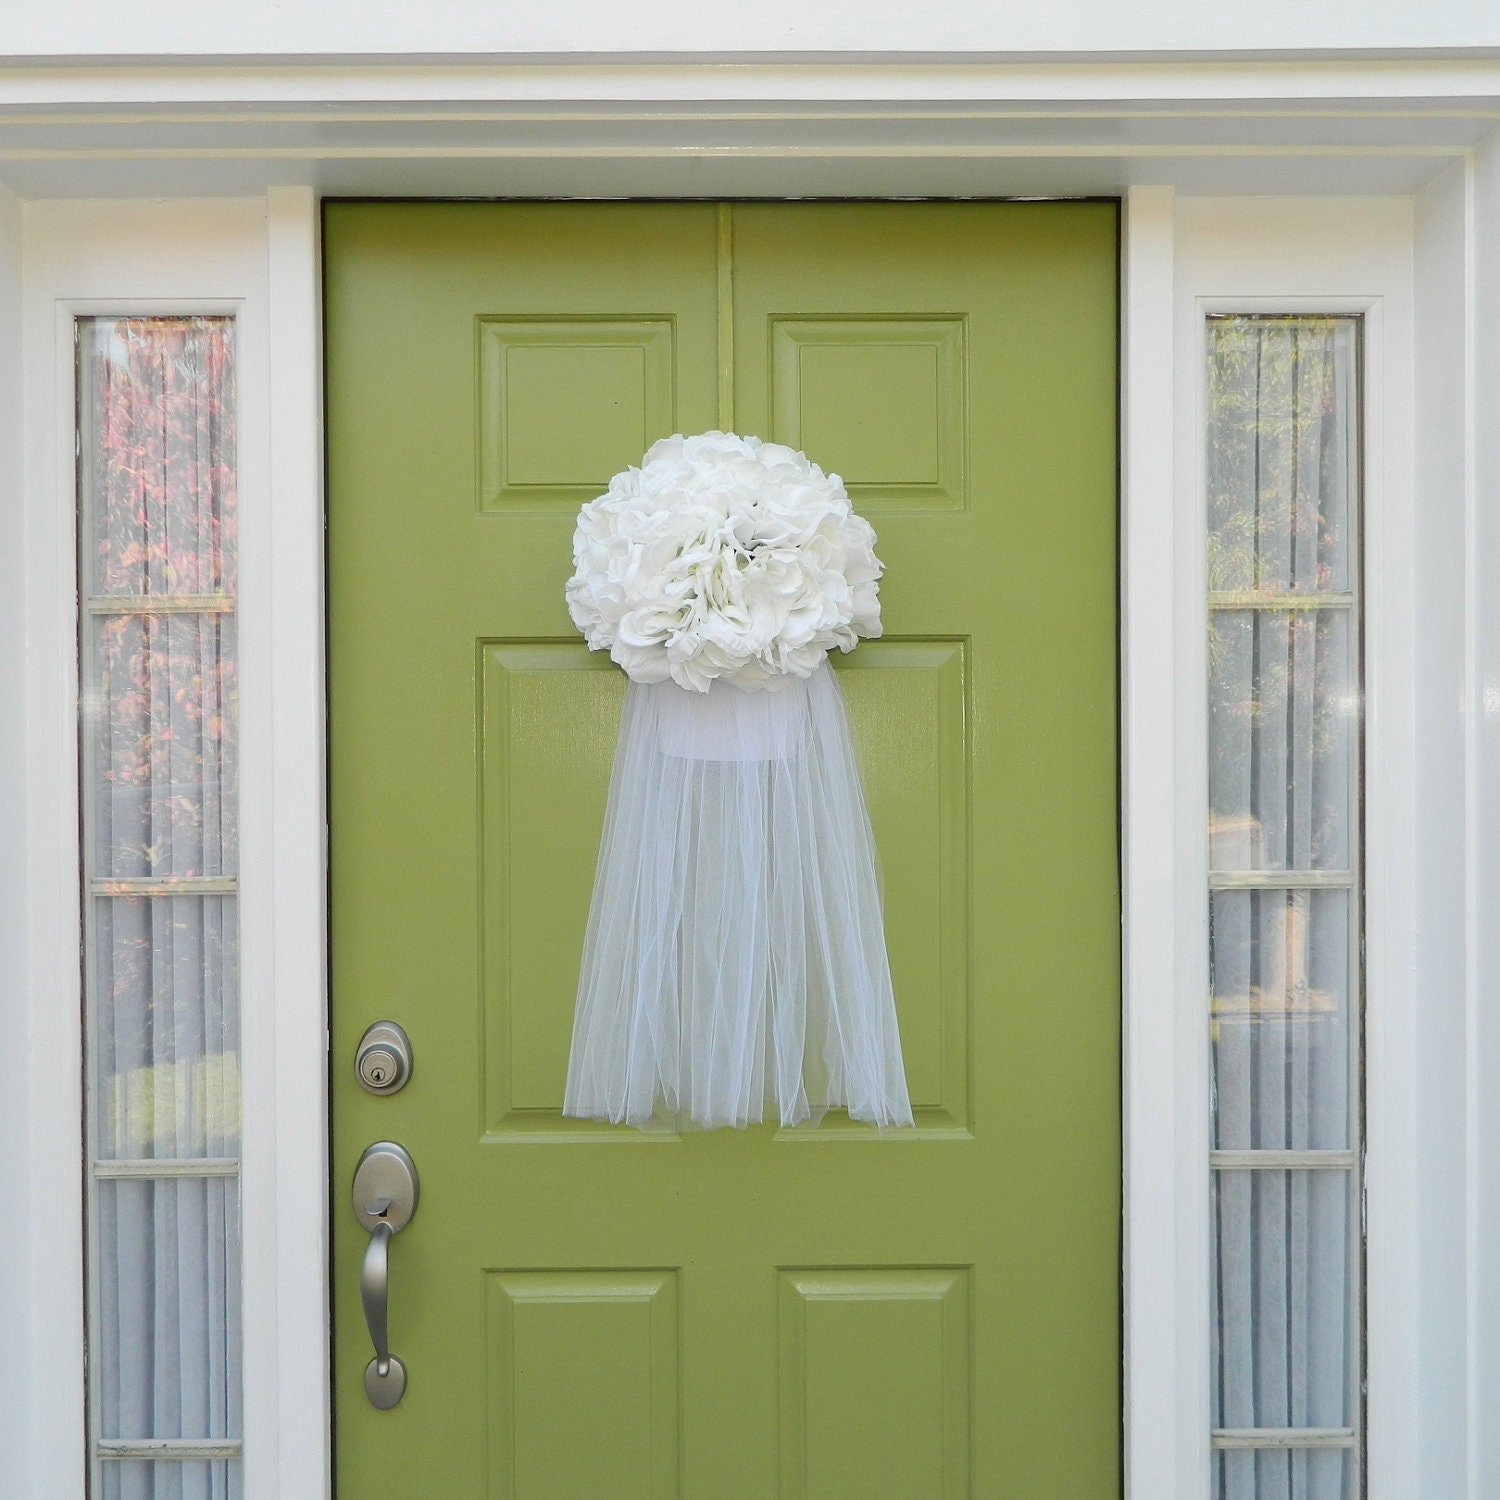 Wedding wreath bridal veil wreath wedding shower for How to decorate for a bridal shower at home